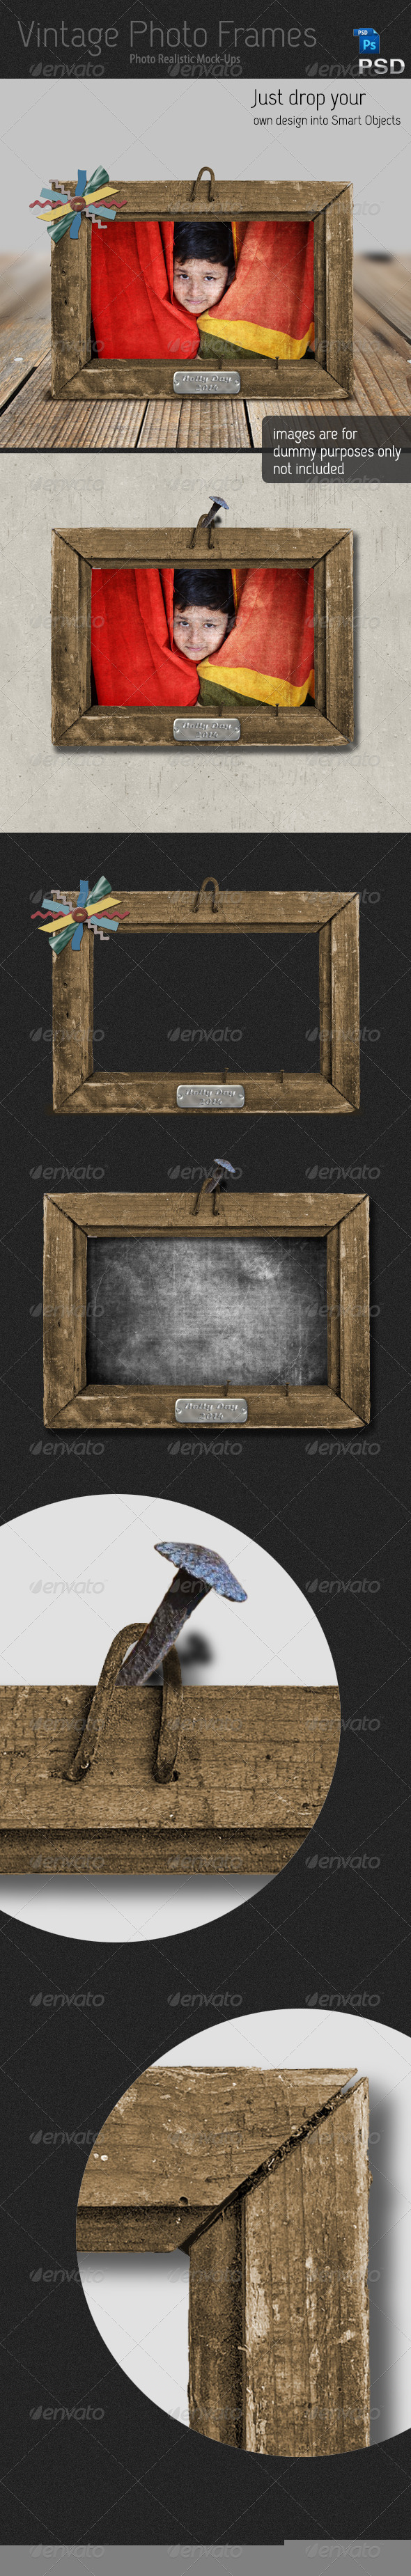 Vintage Photo Frames - Artistic Photo Templates